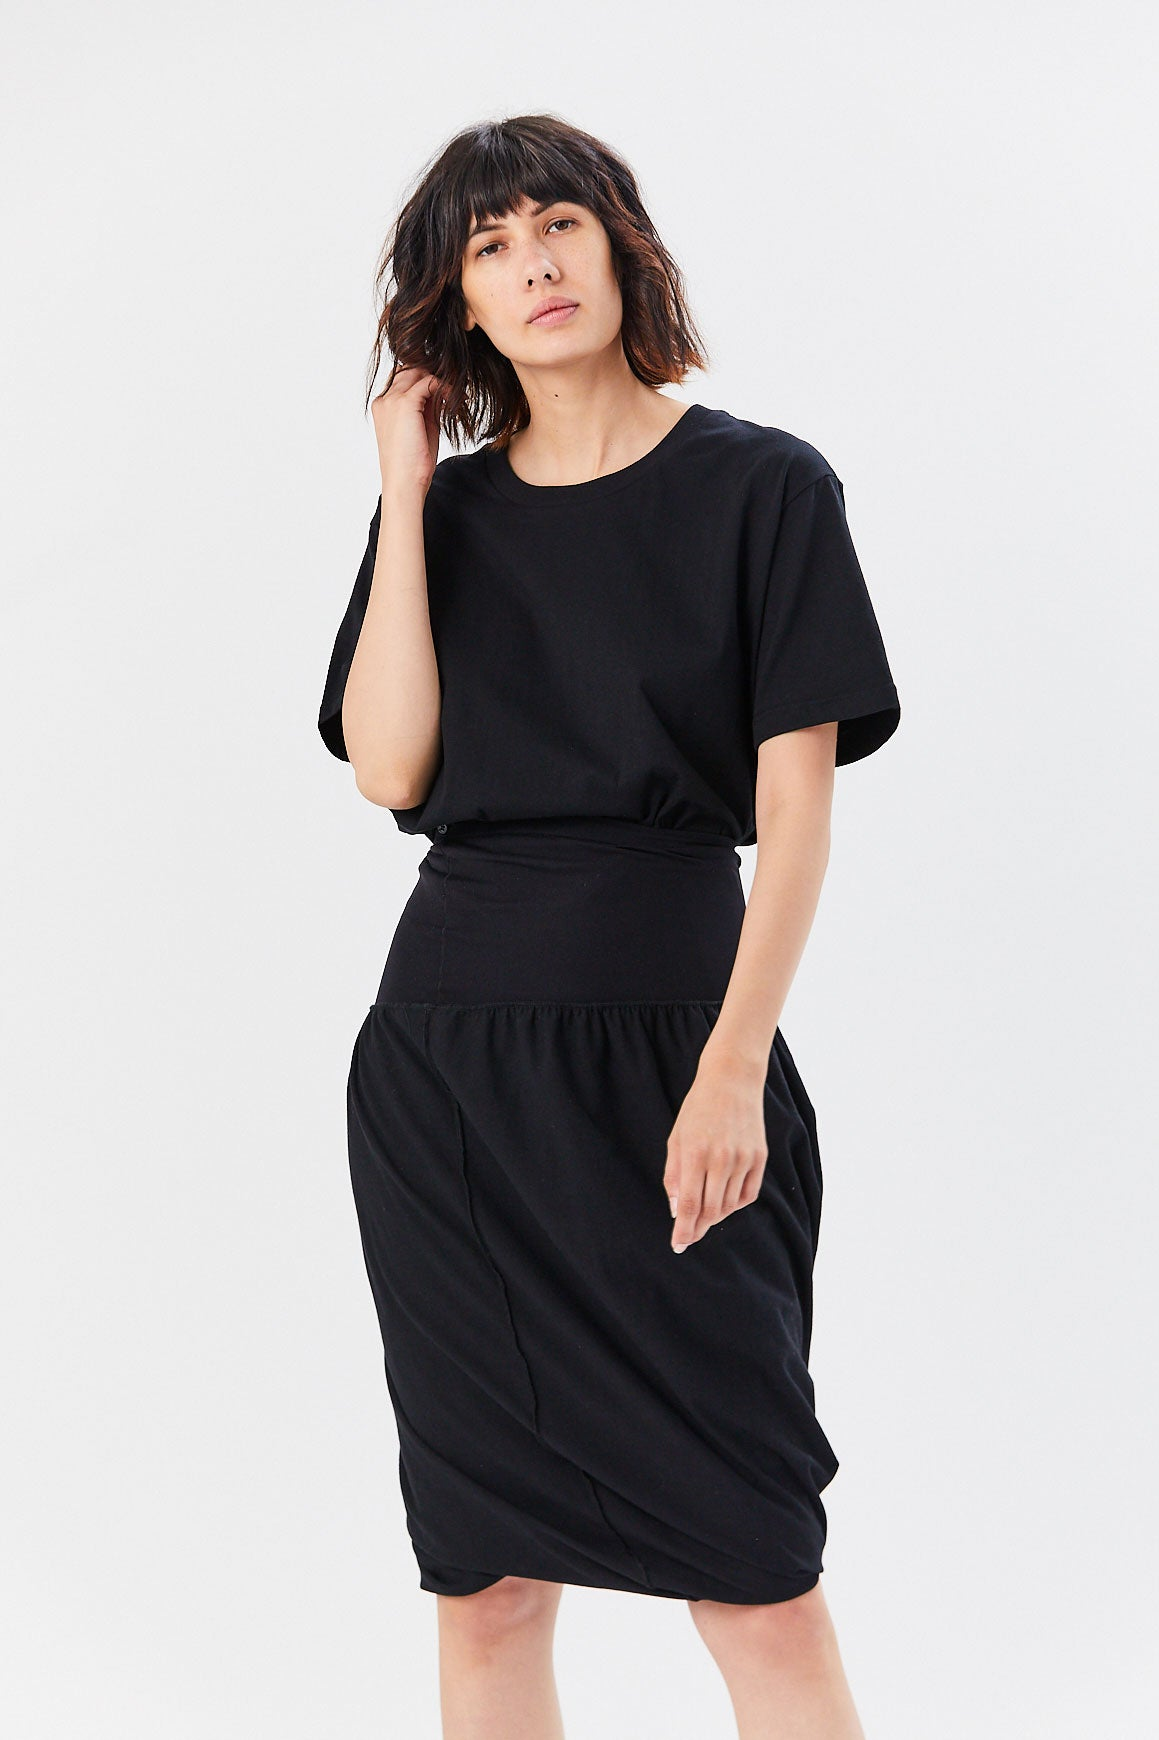 Marni - Cotton Jersey Short Sleeve Dress, Black